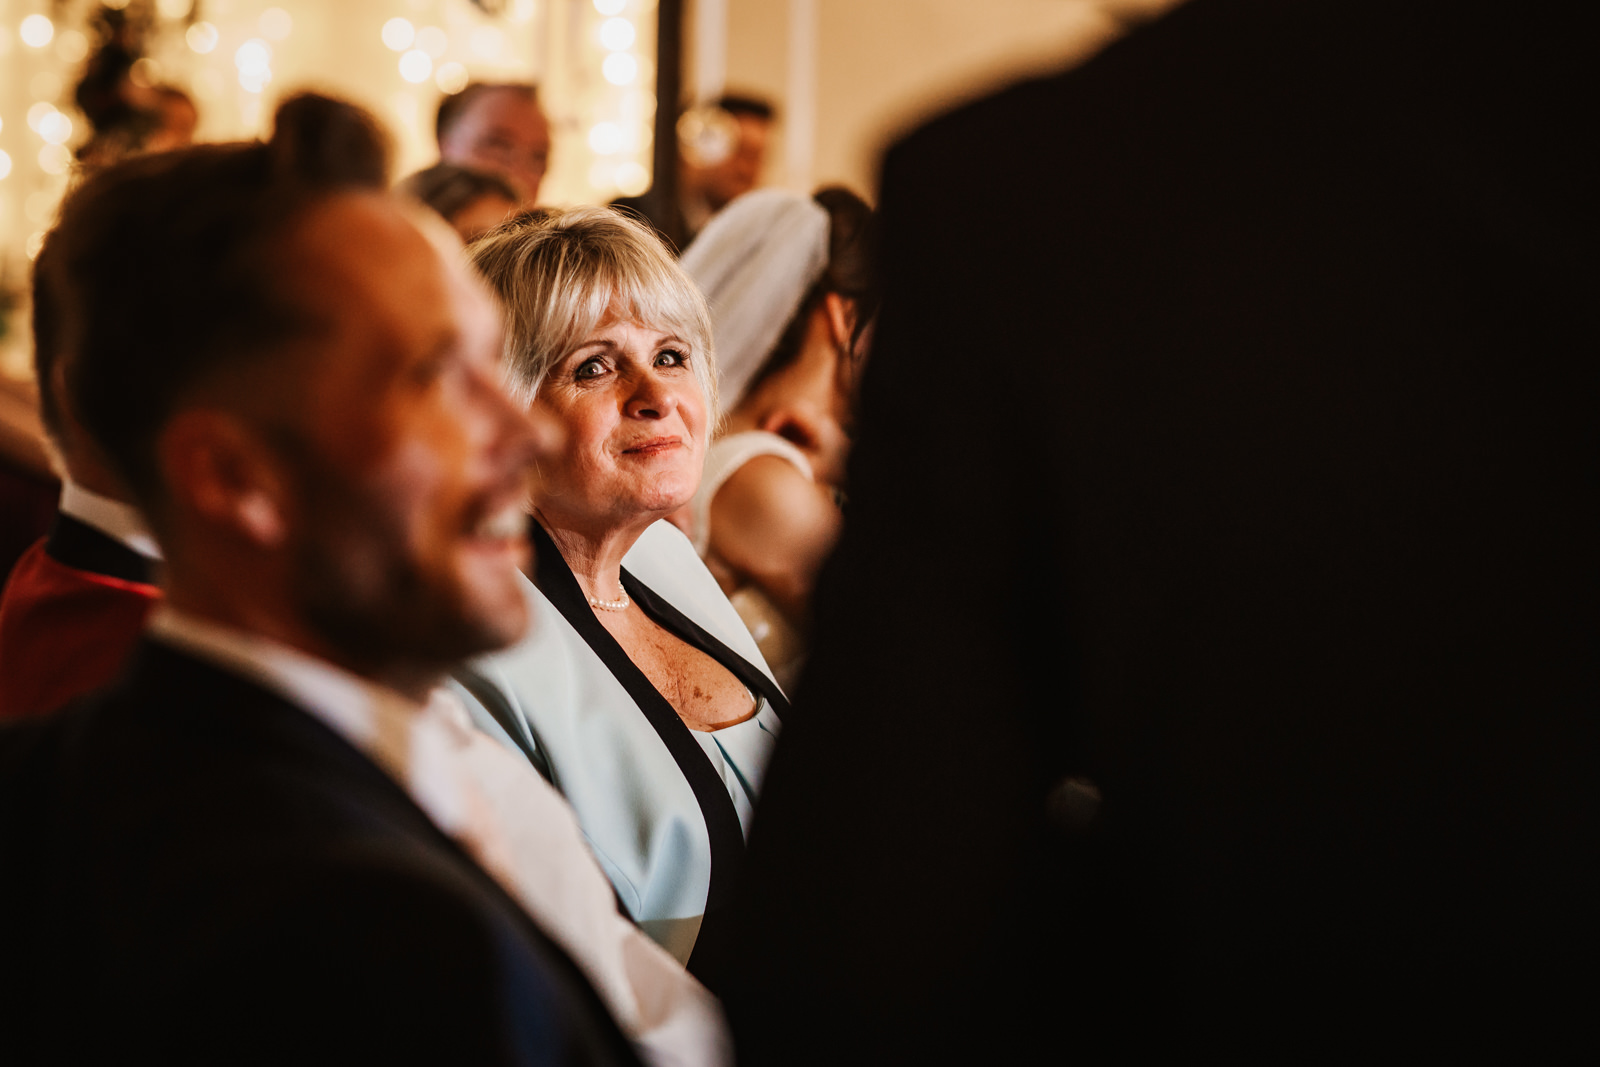 Mother of the groom